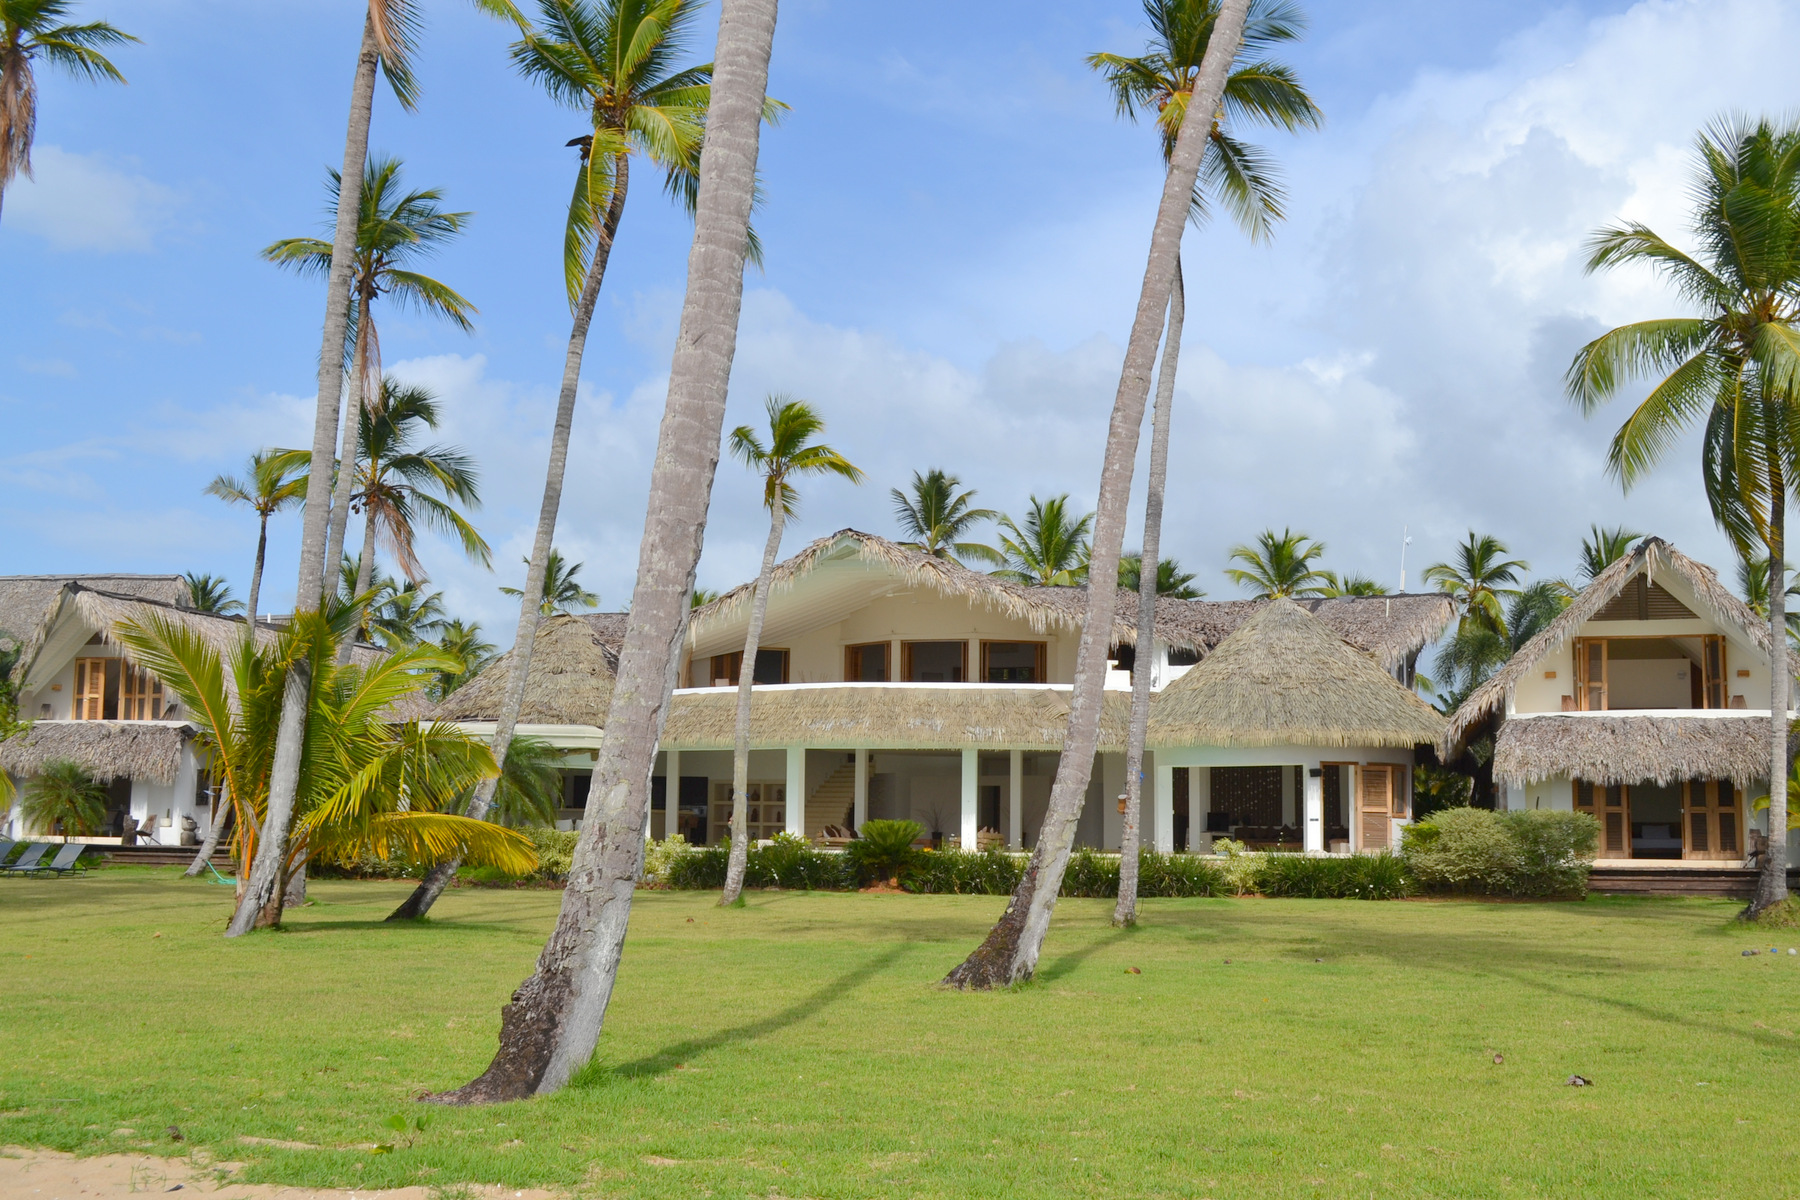 Single Family Home for Sale at Villa del Mar Villa del Mar, Coson, Las Terrenas, Samana, 32000 Dominican Republic